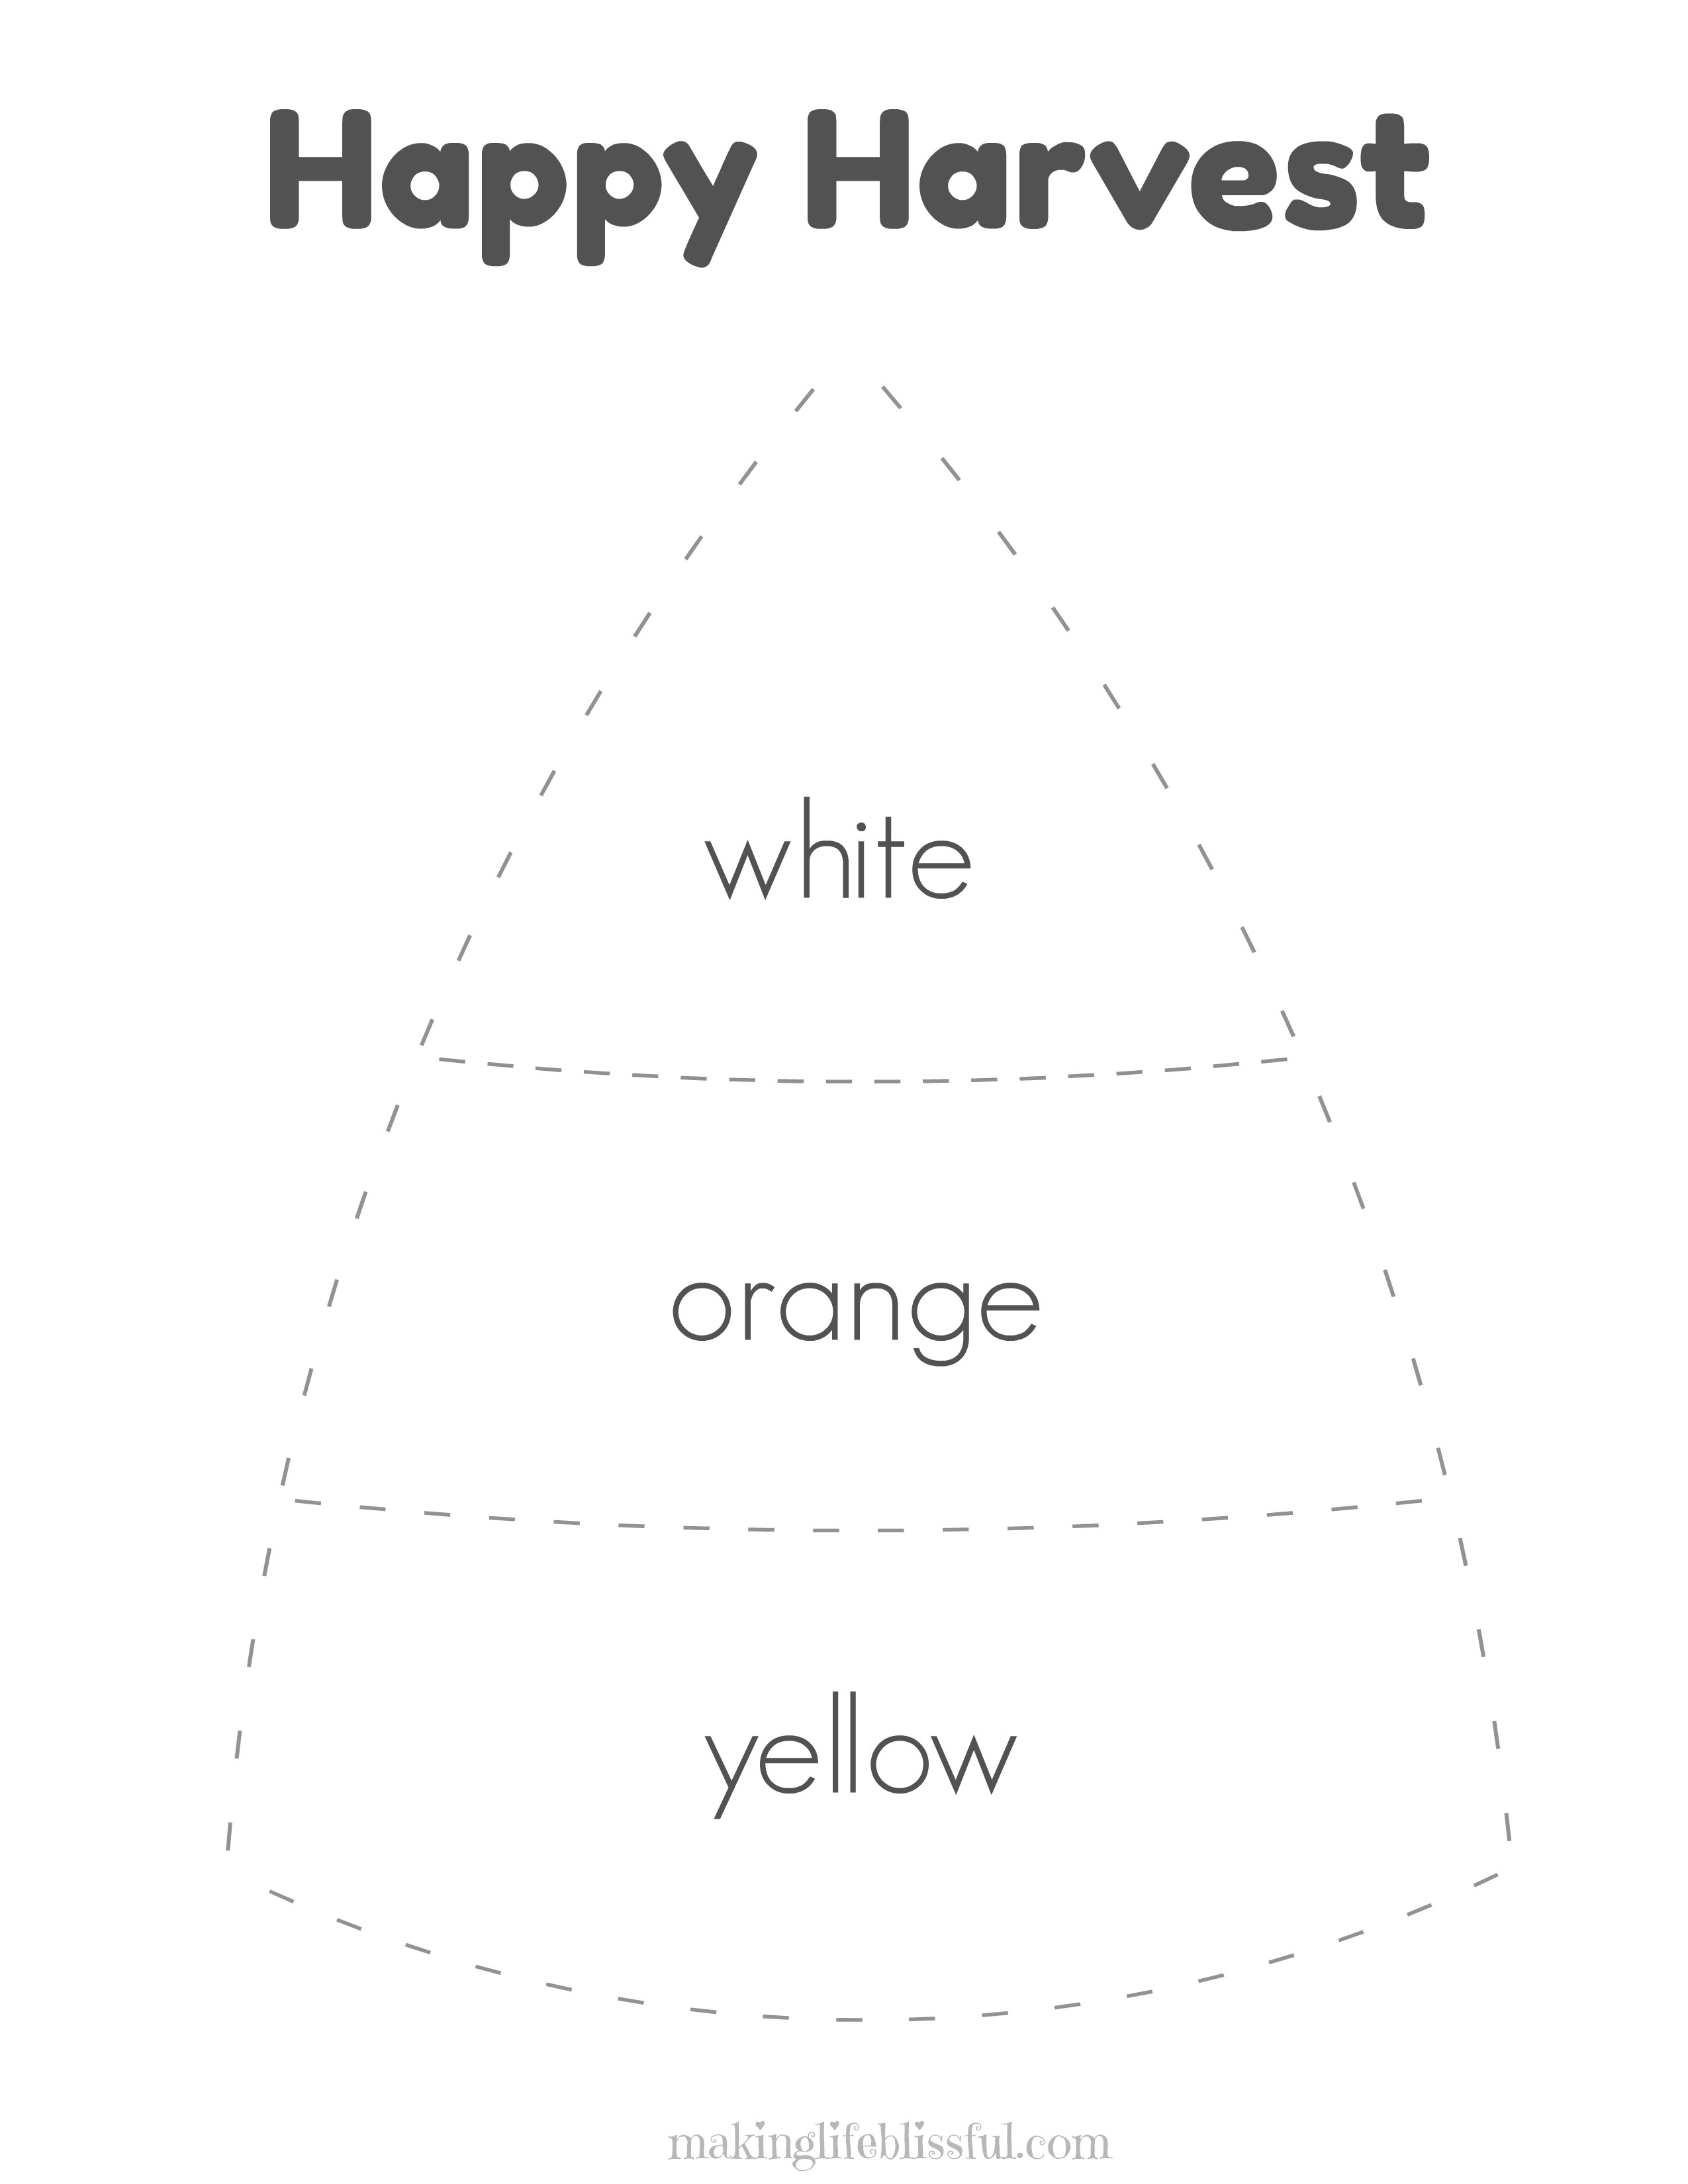 Candy Corn Craft For Kids And Printables | Making Life Blissful - Free Printable Candy Corn